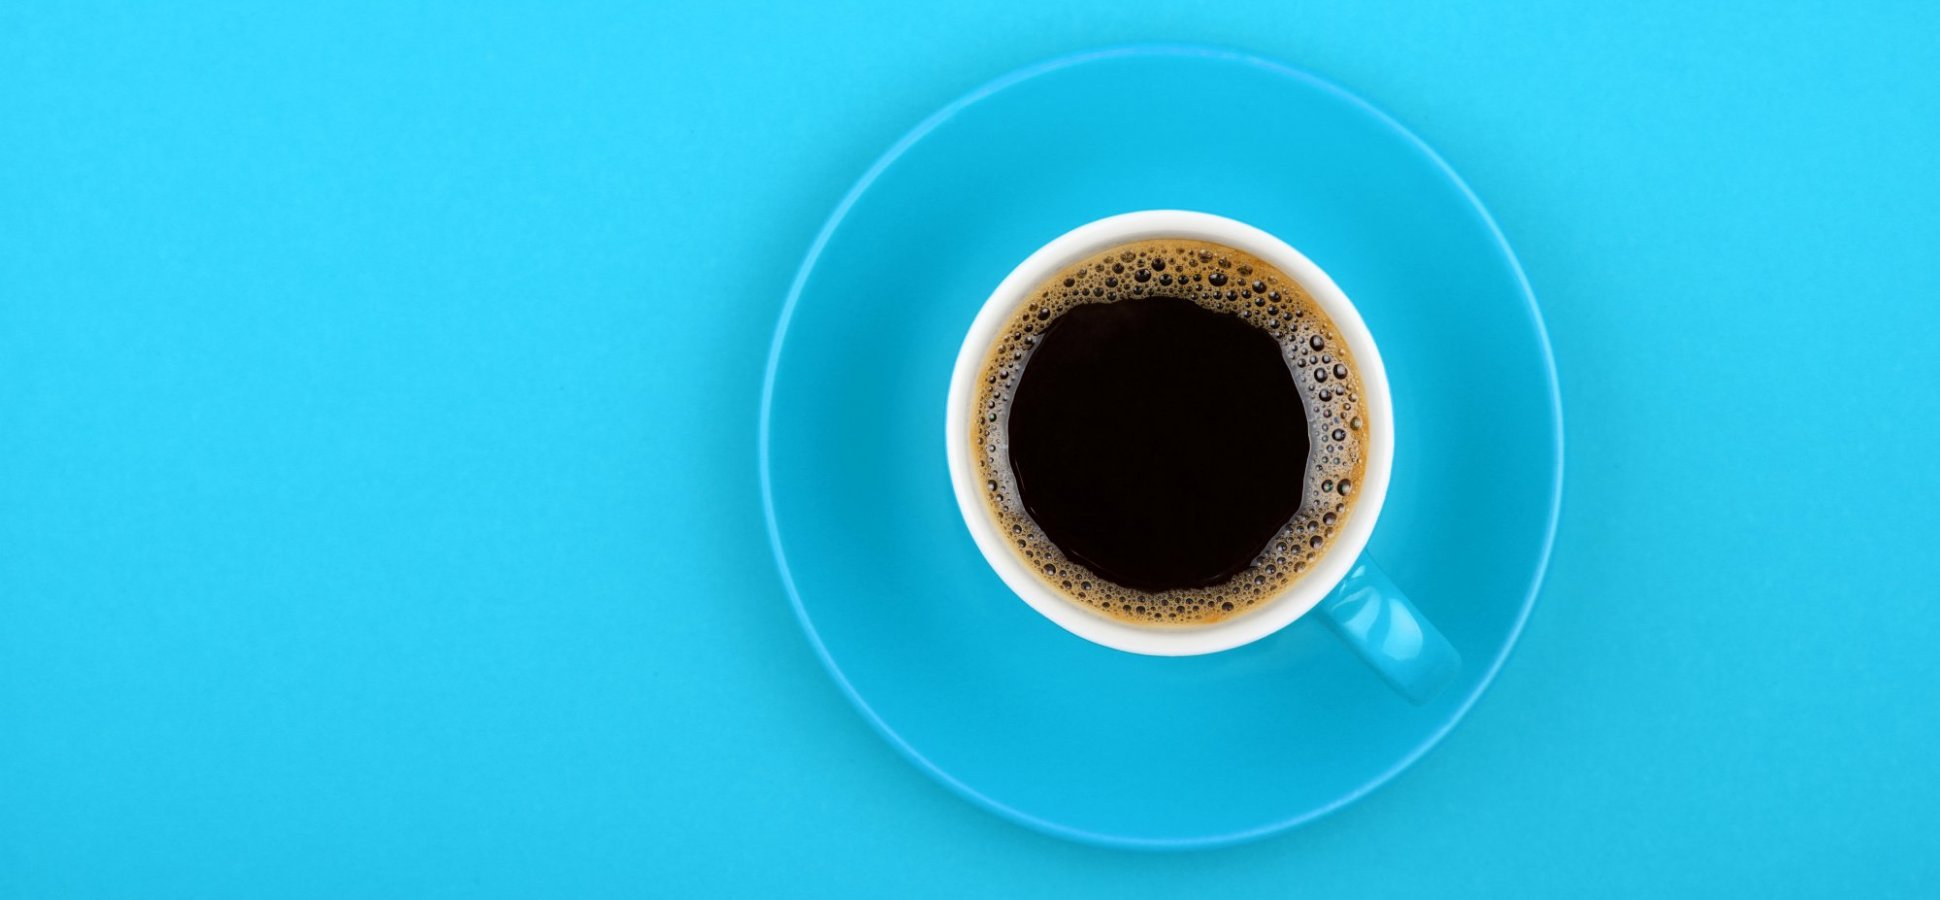 Neuroscientists Just Explained How Coffee Makes Your Brain Healthier. The Reason Why Really Surprised Them